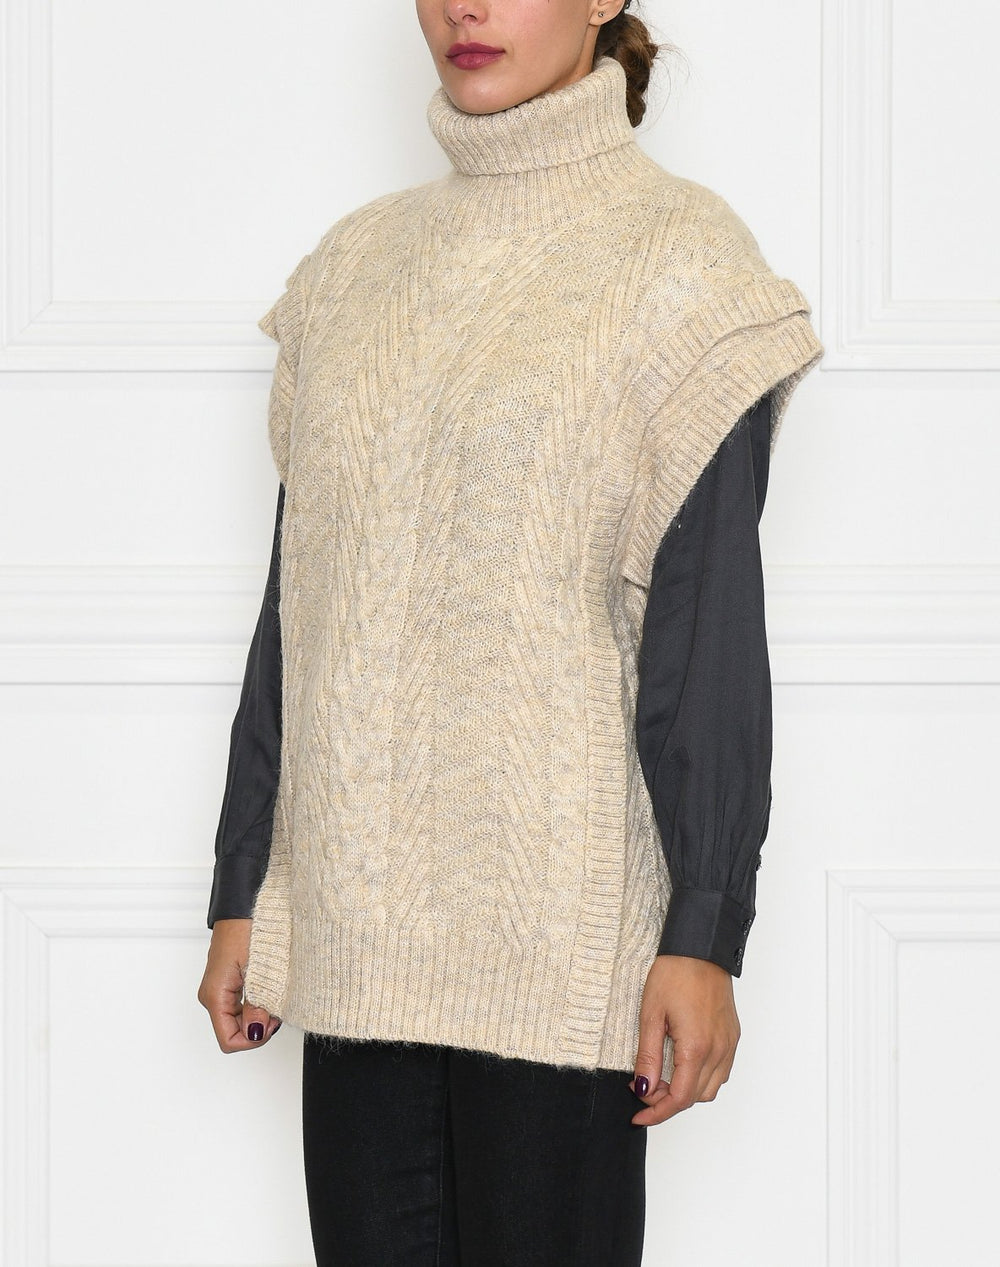 Soft Rebels SRsandy knit vest whitecap gray - Online-Mode